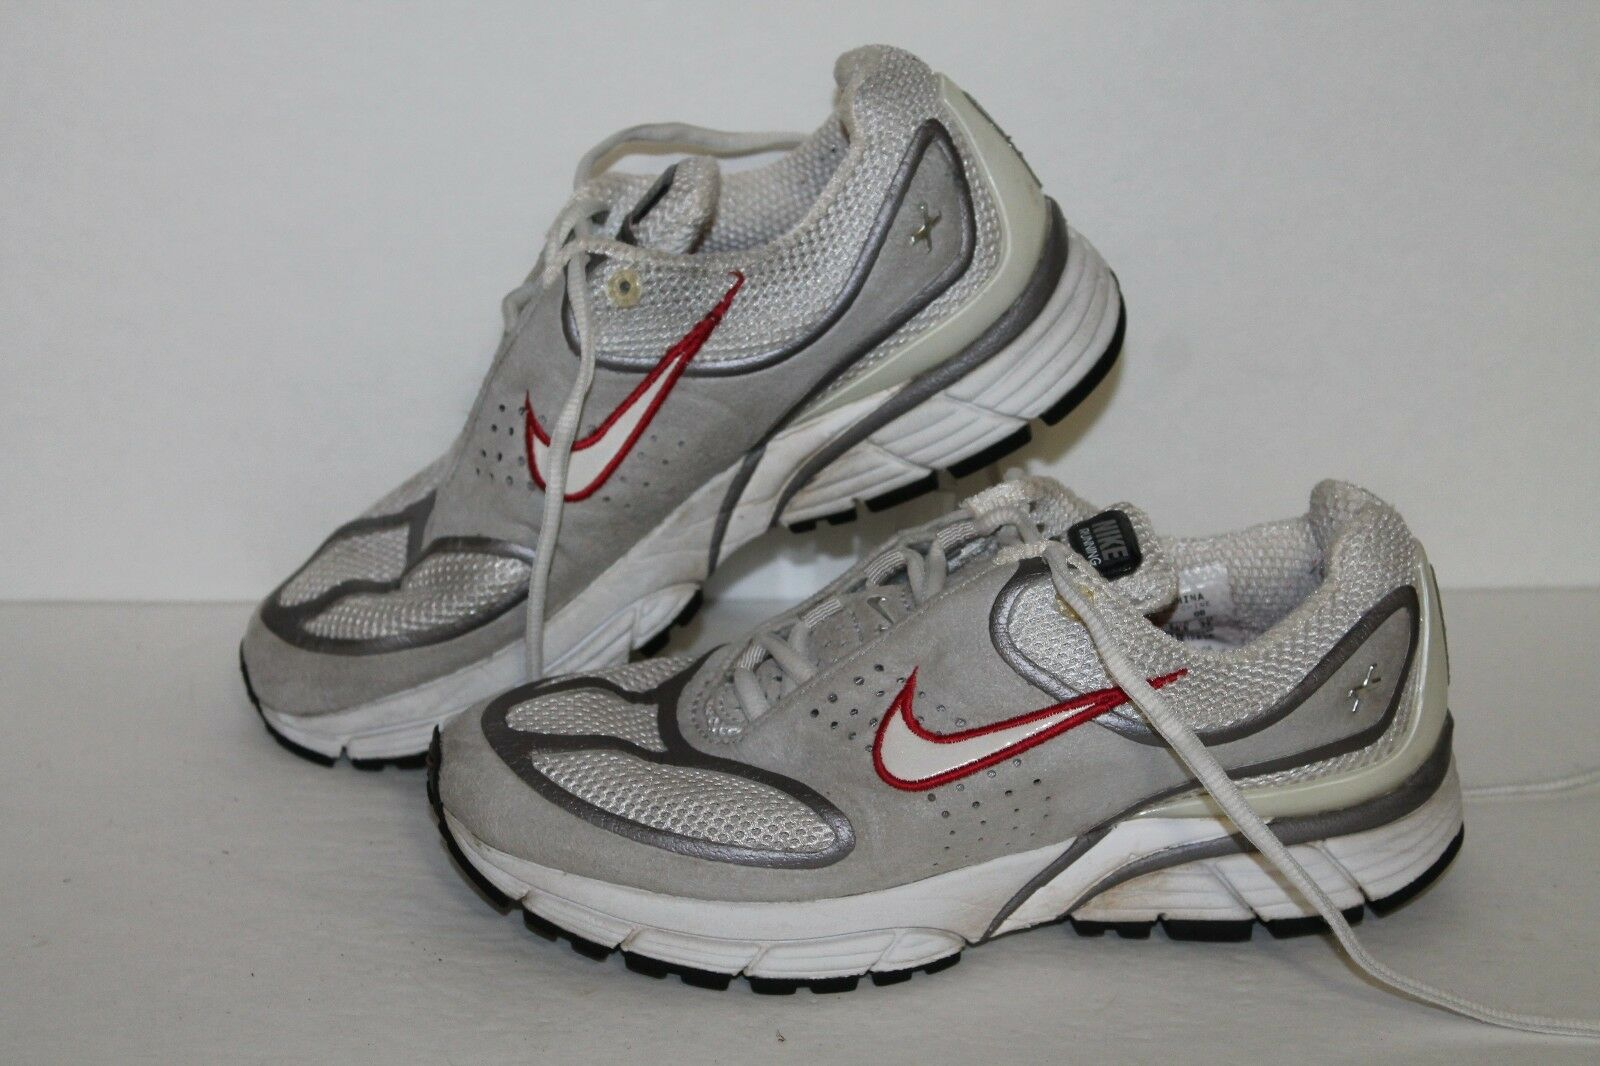 Nike Zoom Womens Plus + Running Shoes, Grey/Red/Slvr, Womens Zoom US Size 6 bf370e